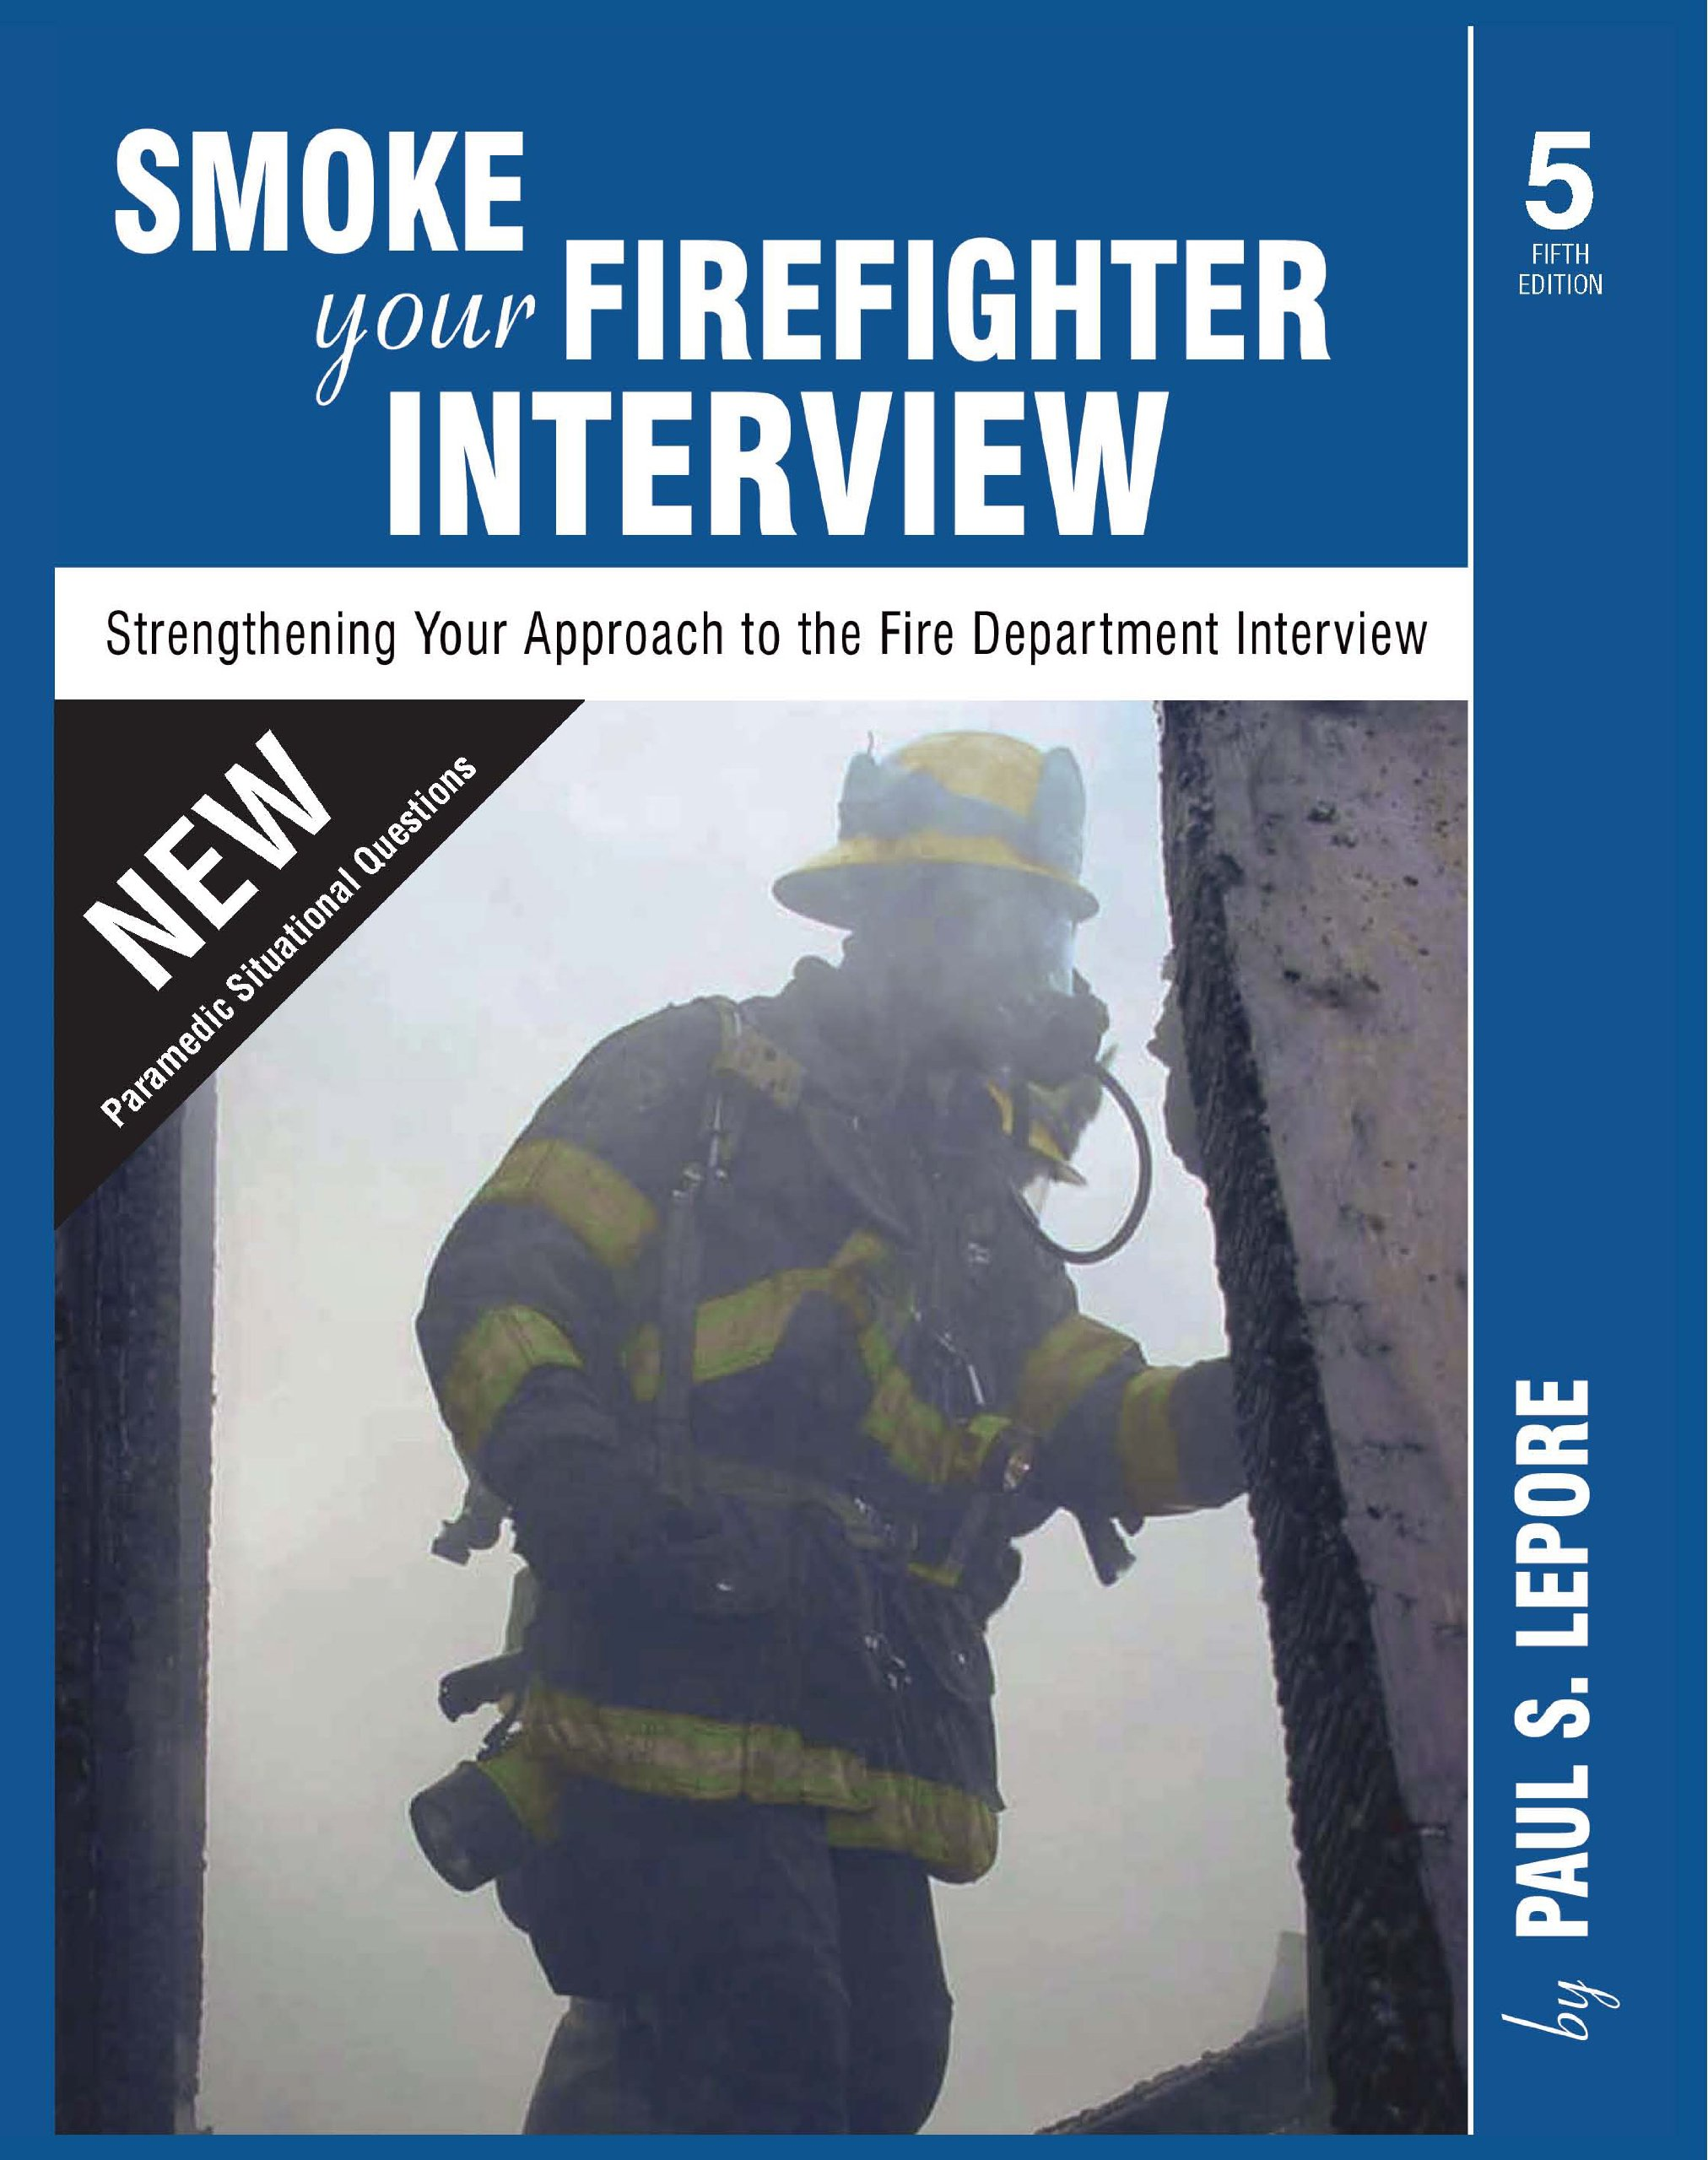 smoke your firefighter interview paul s lepore 9780972993456 smoke your firefighter interview paul s lepore 9780972993456 amazon com books